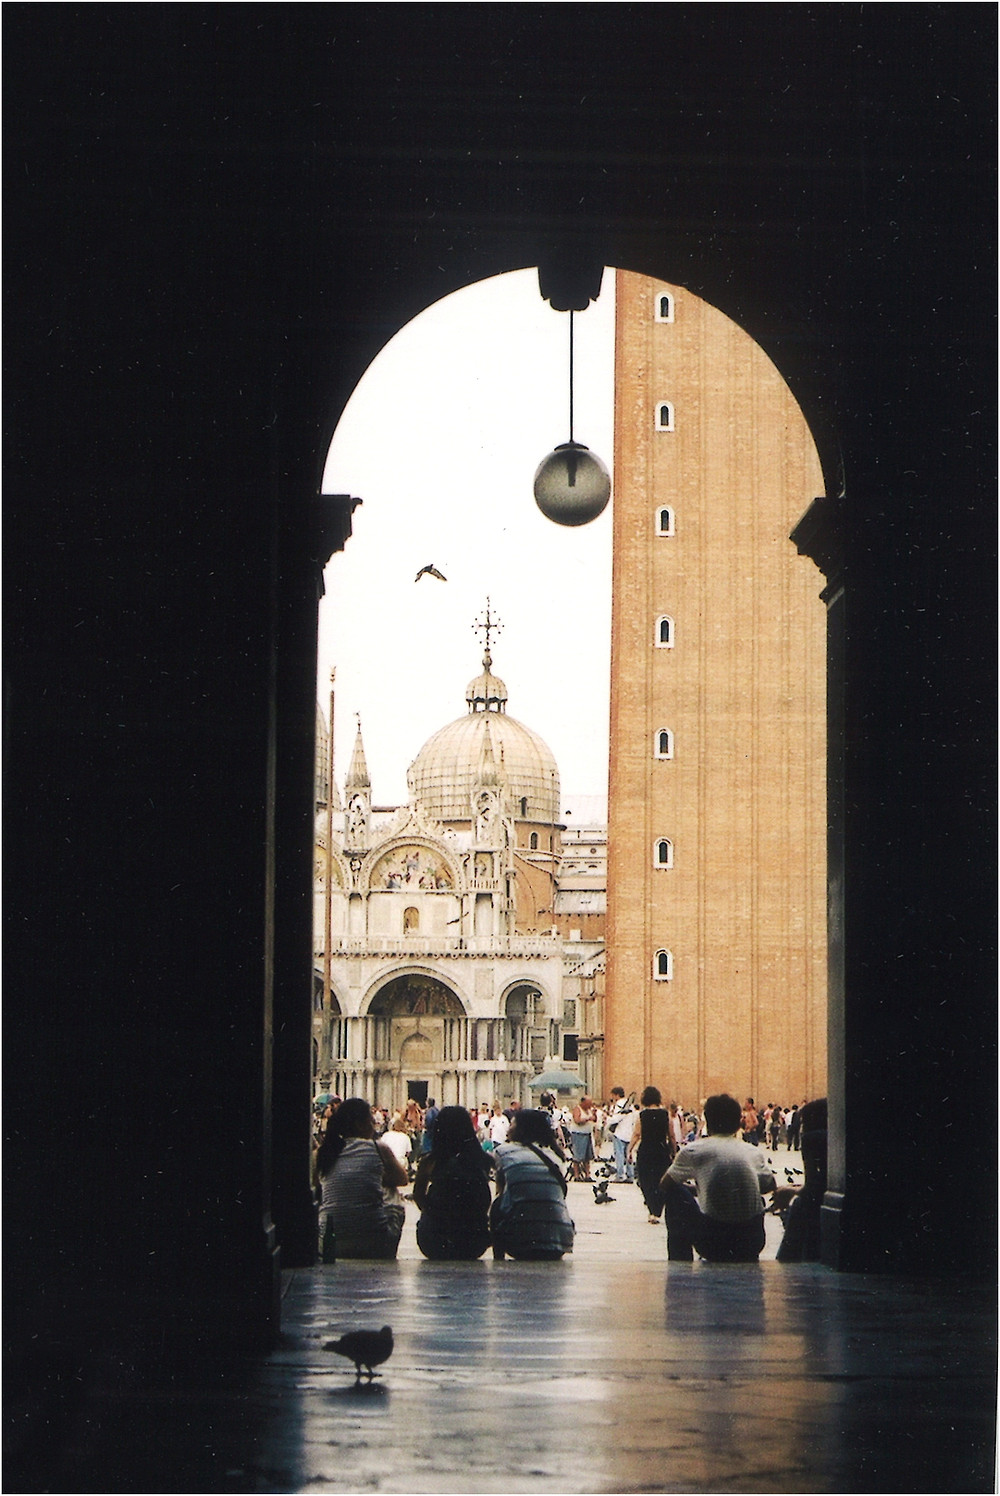 View of the Basilica of San Marco from the arch